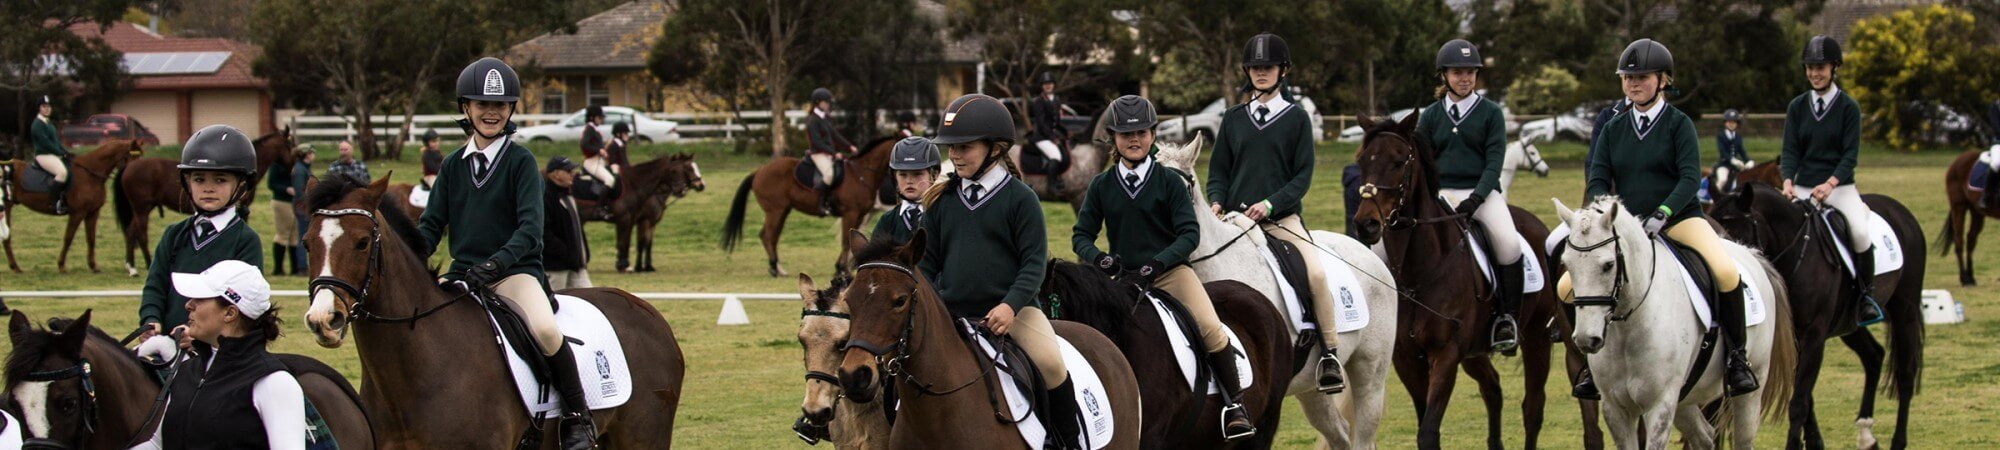 Equestrian IMG 5479 Banner